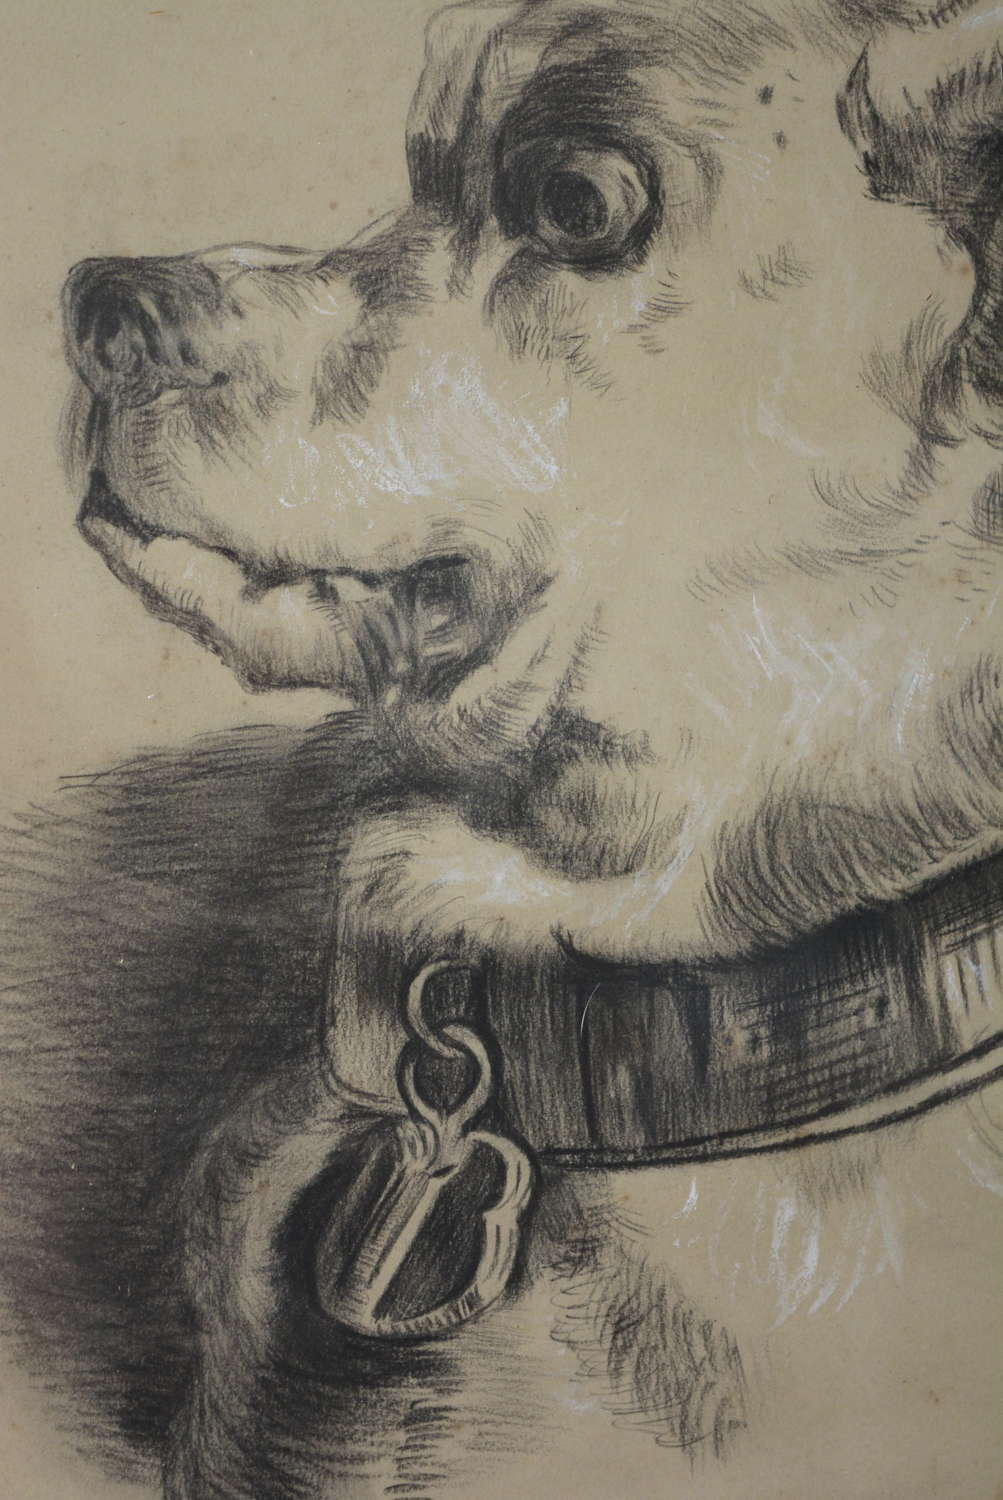 19TH CENTURY PENCIL DRAWING OF ALEXANDER THE GREAT